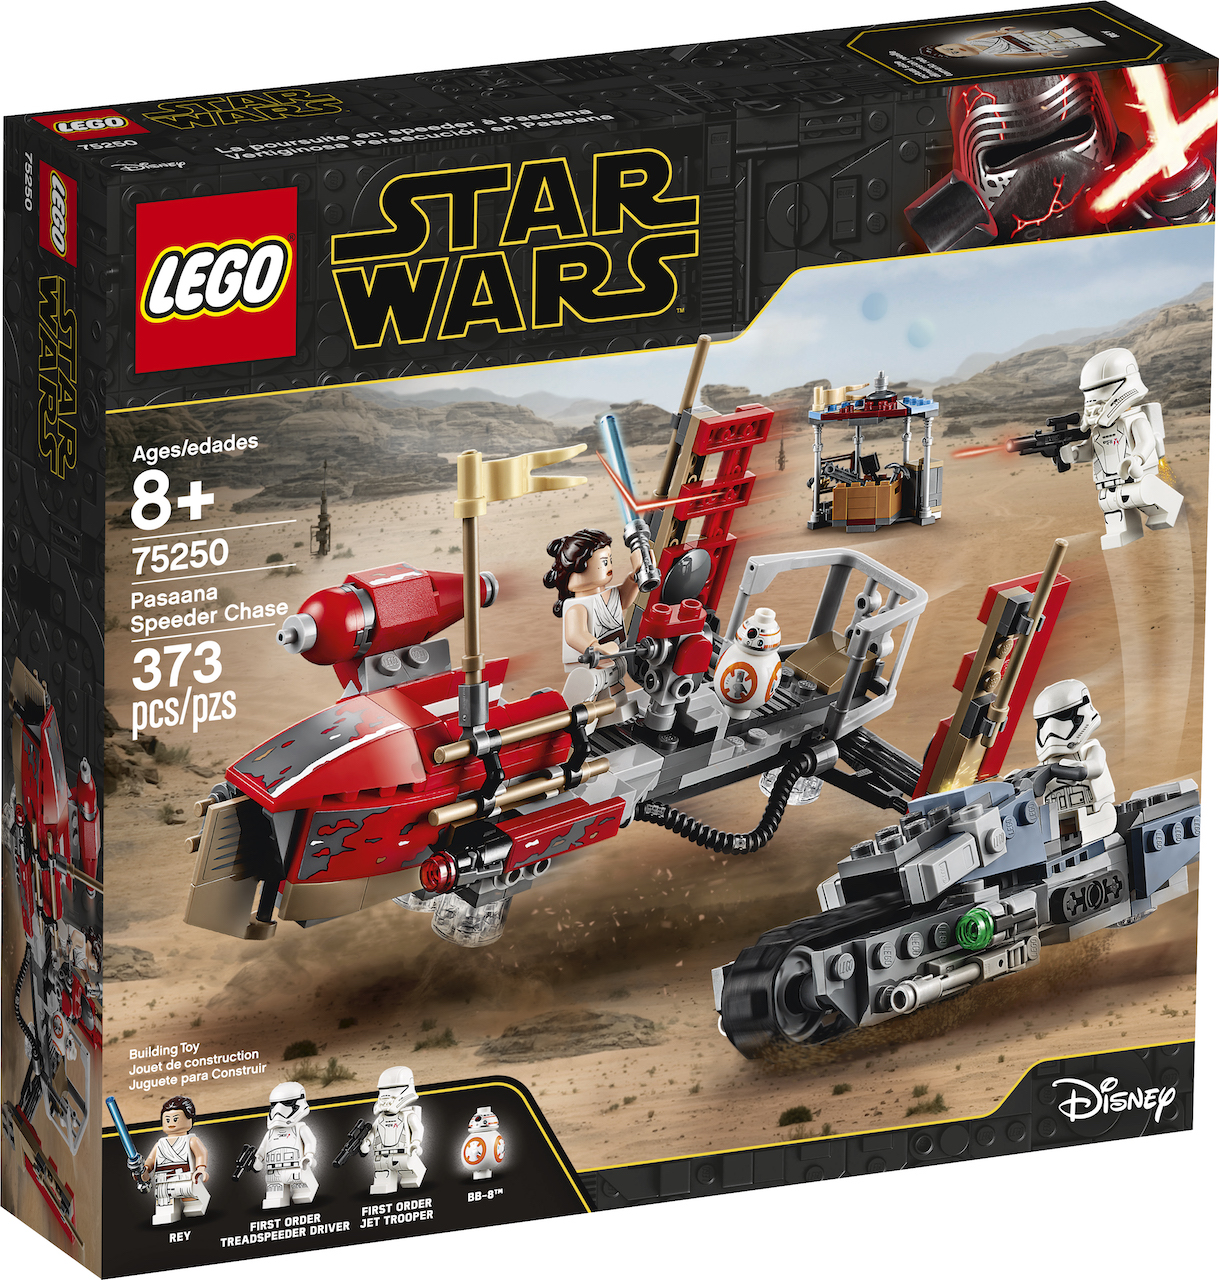 First Look: LEGO Star Wars Pasaana Speeder Chase set